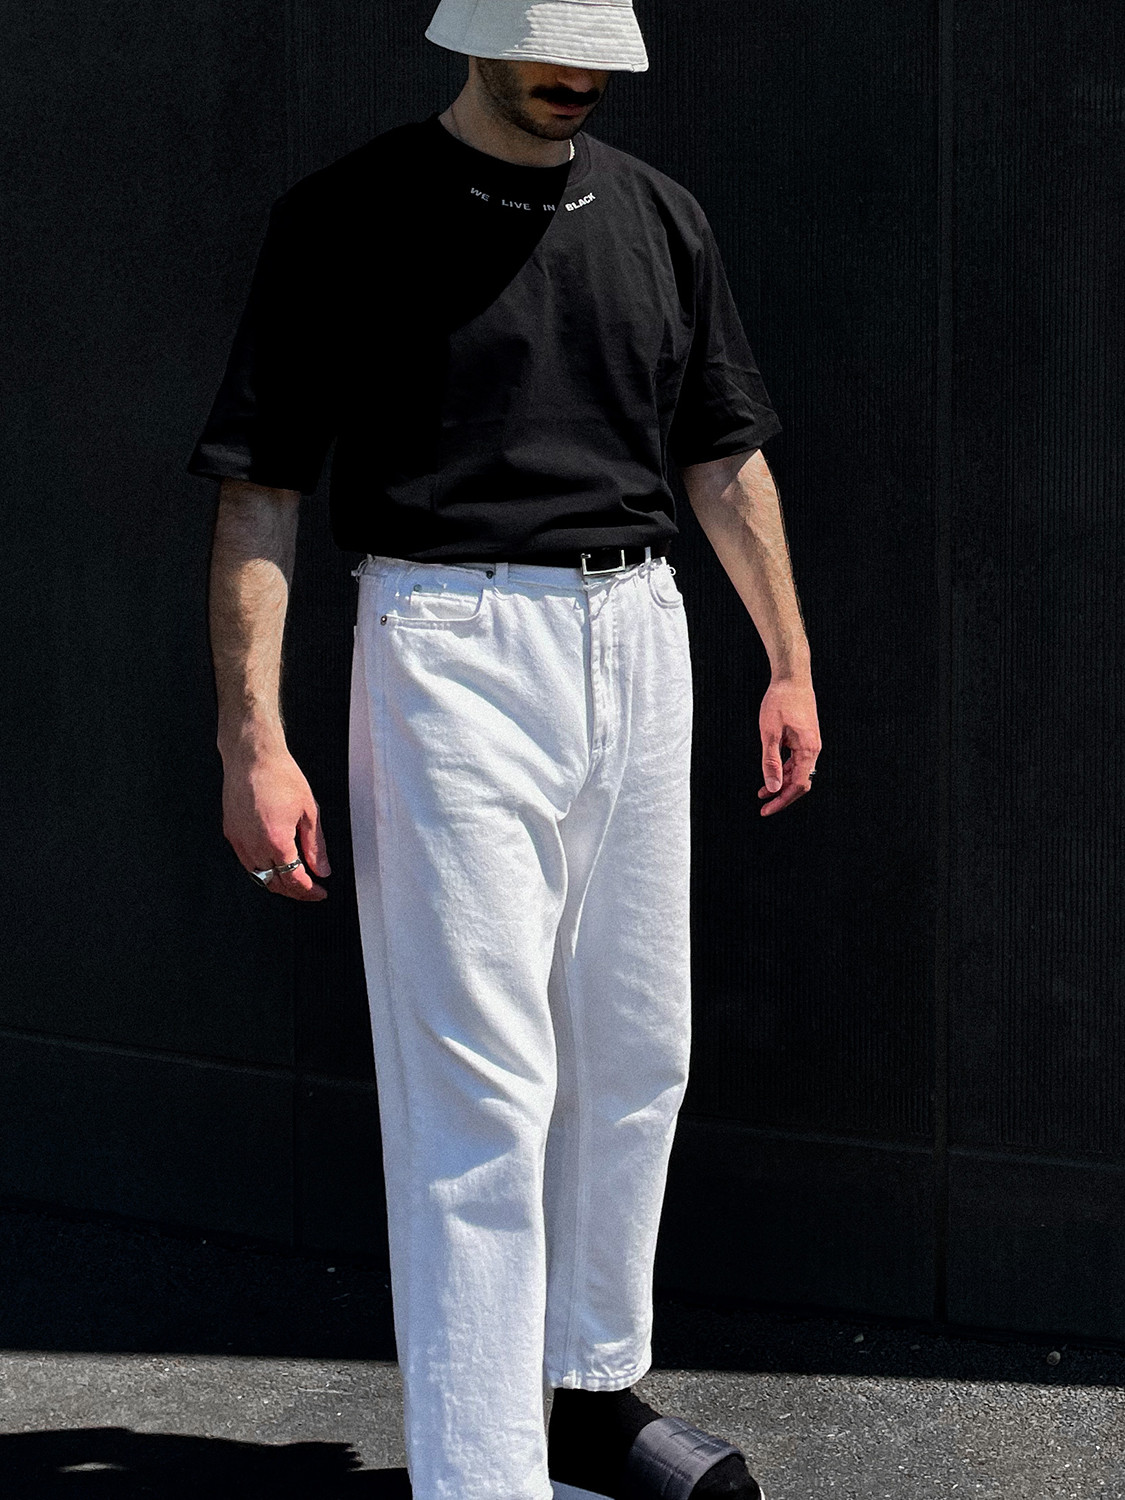 Men's outfit idea for 2021 with black crew neck t-shirt, white jeans, black flipflops. Suitable for summer.